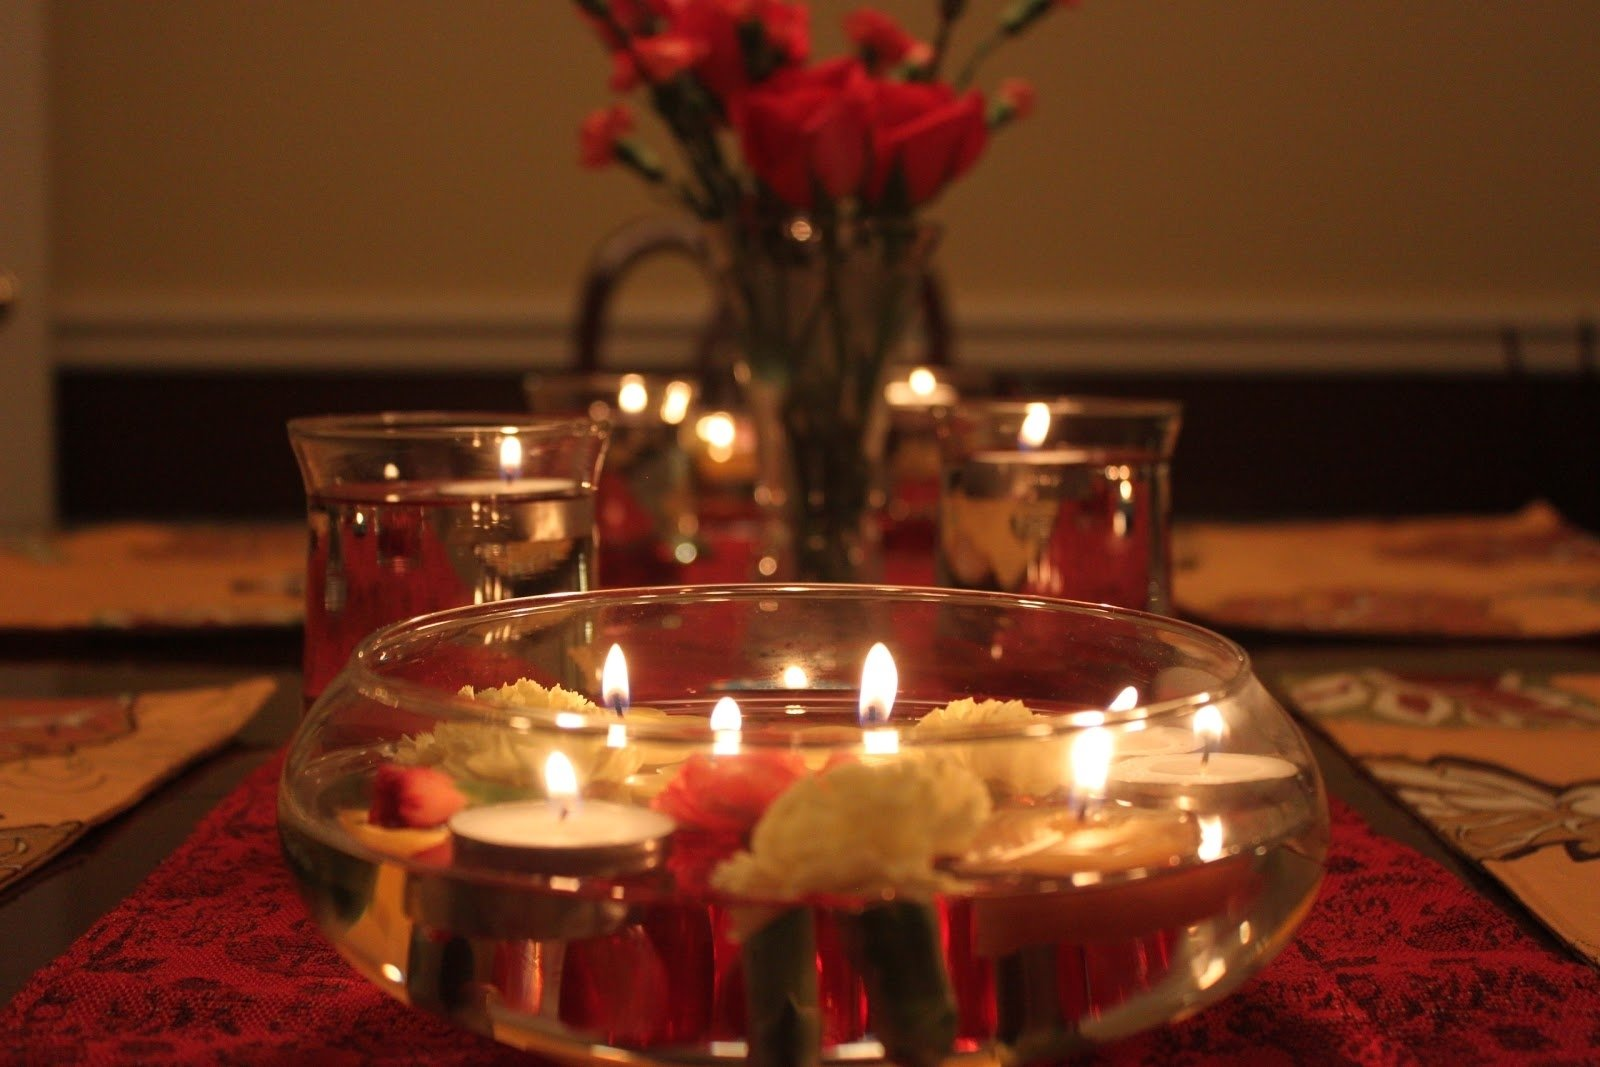 10 Great Romantic Dinner Ideas For Him great tips to make it a memorable romantic dinner at home 3 2021